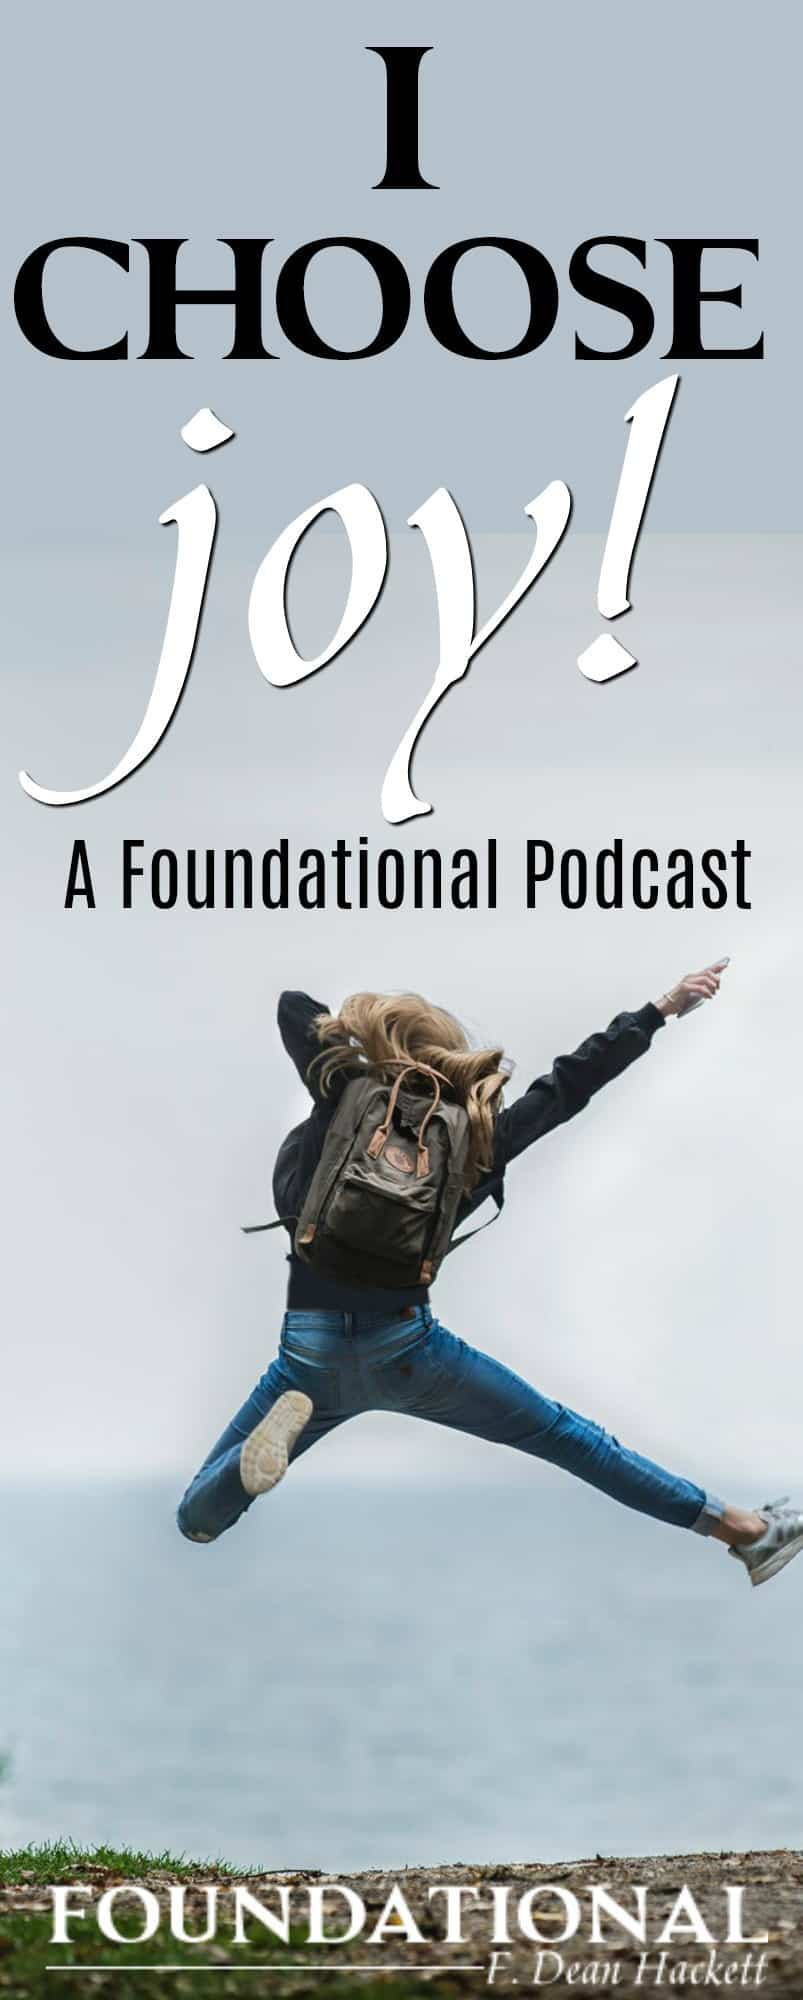 How do you deal with life when bad things happen? We can live a life of joy, even when evil things happen all around us. In this podcast we examine what Scripture teaches us about how to choose joy.